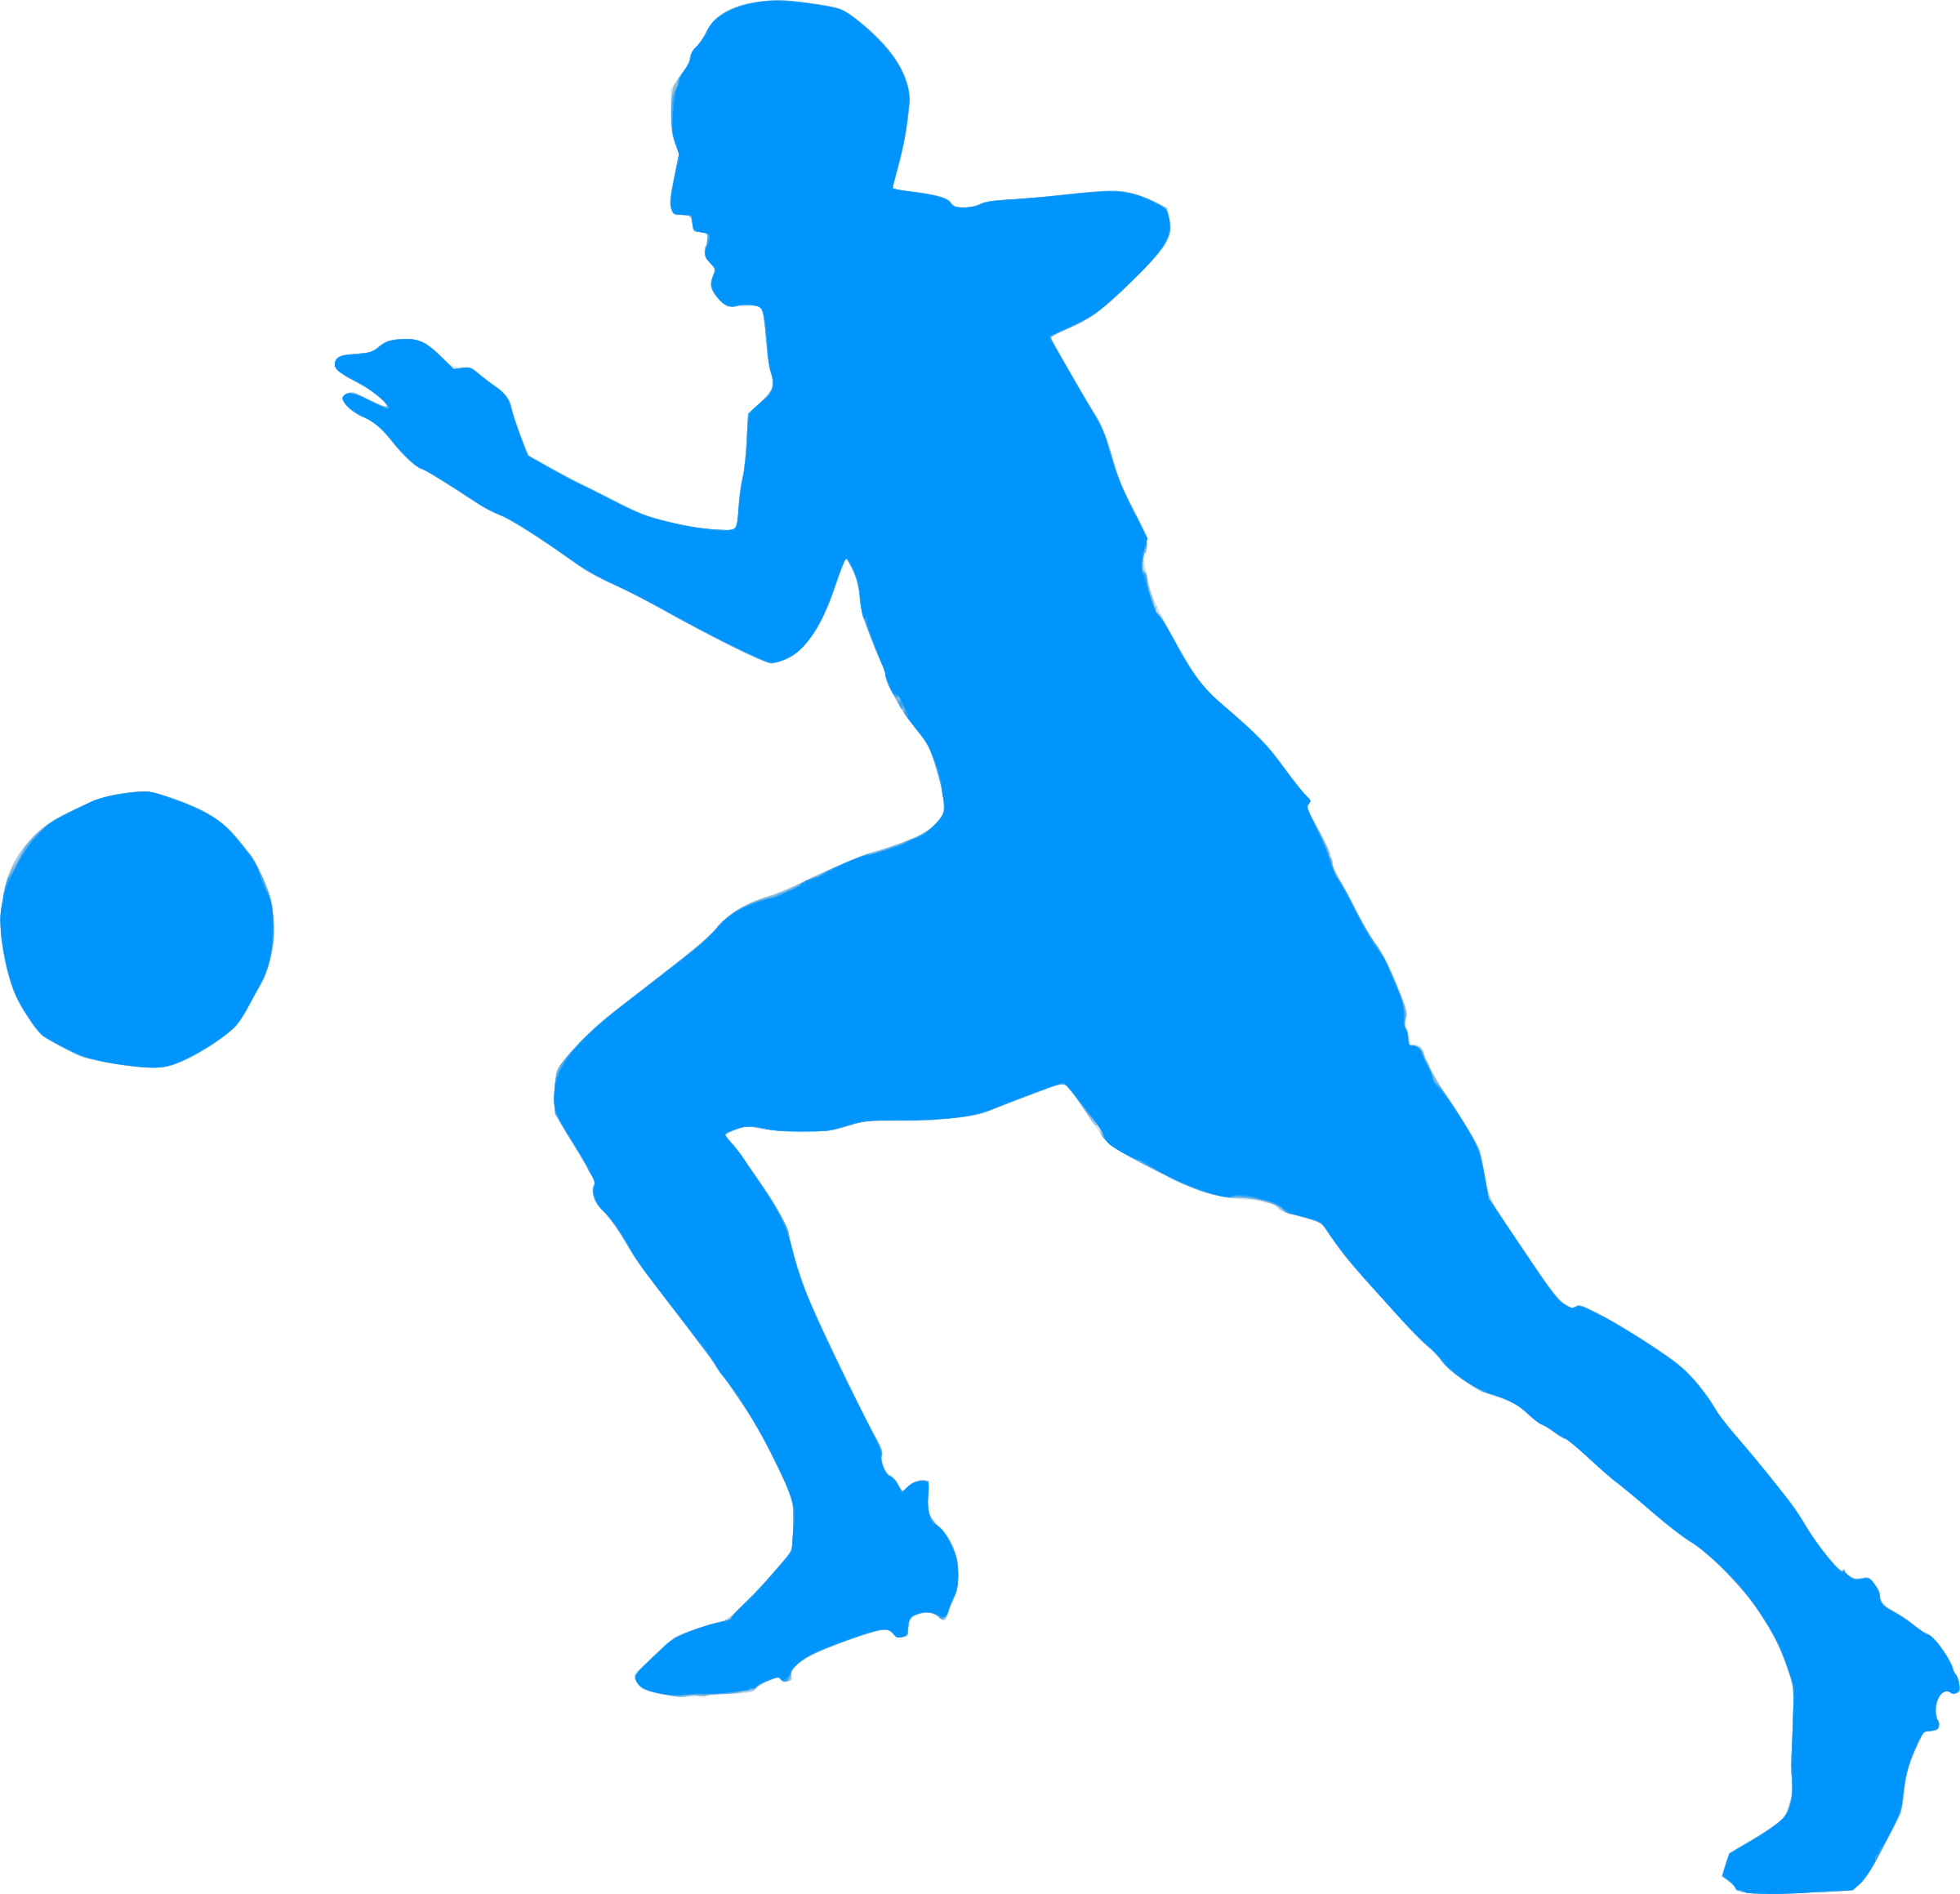 Clipart volleyball football. Silhouette icons png free